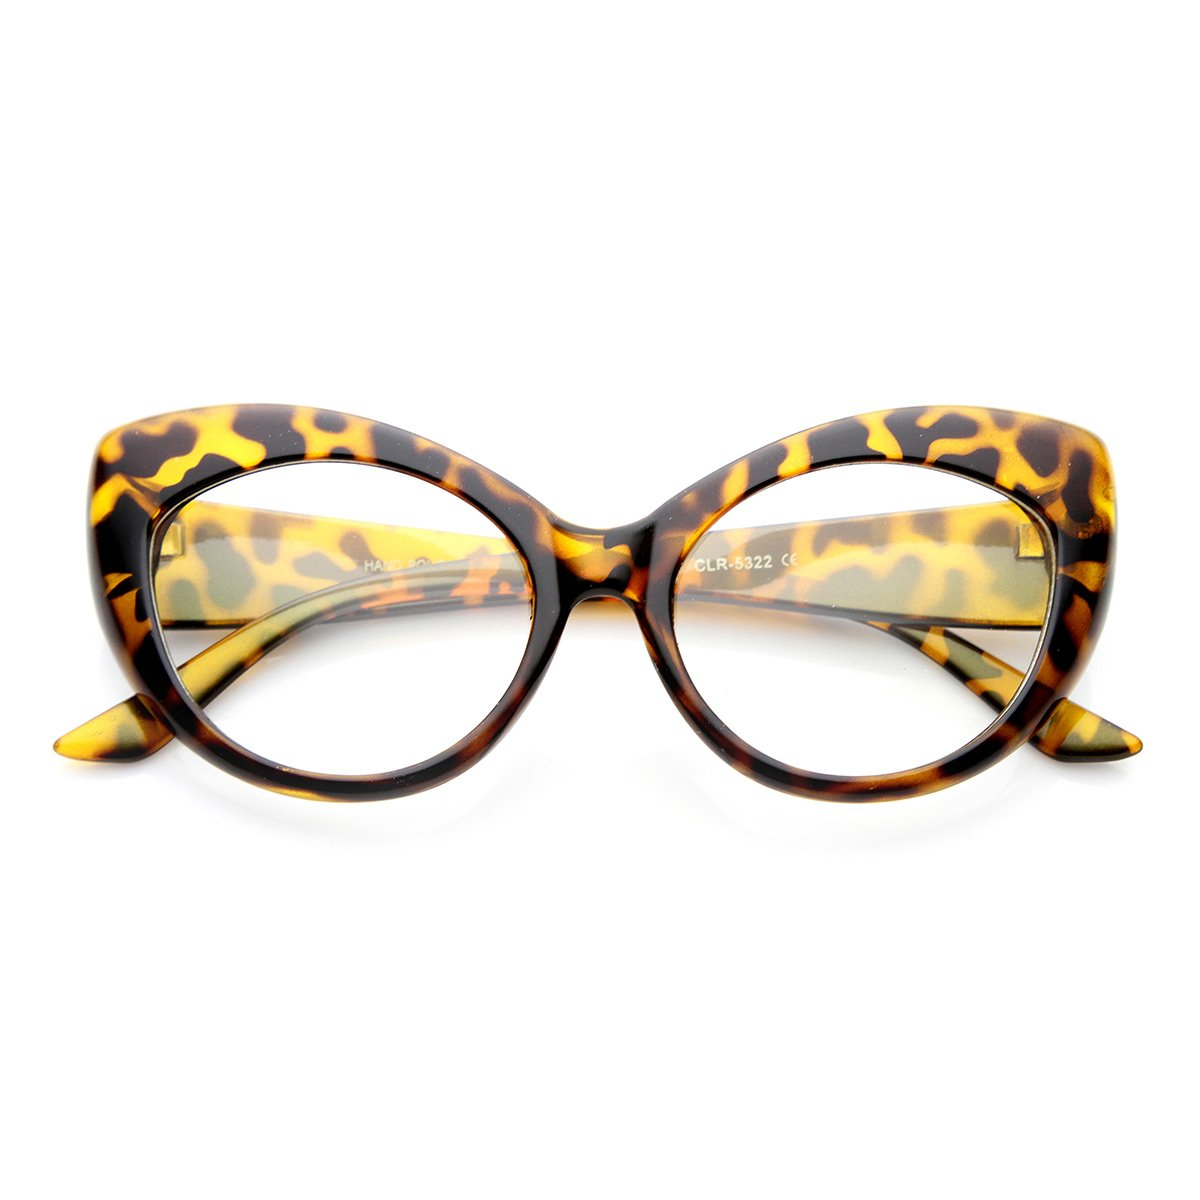 811c7bc284ed Amazon.com  zeroUV - Mod Pointed Cat Eye Clear Fashion Frame Glasses (Cheetah  Clear)  Clothing